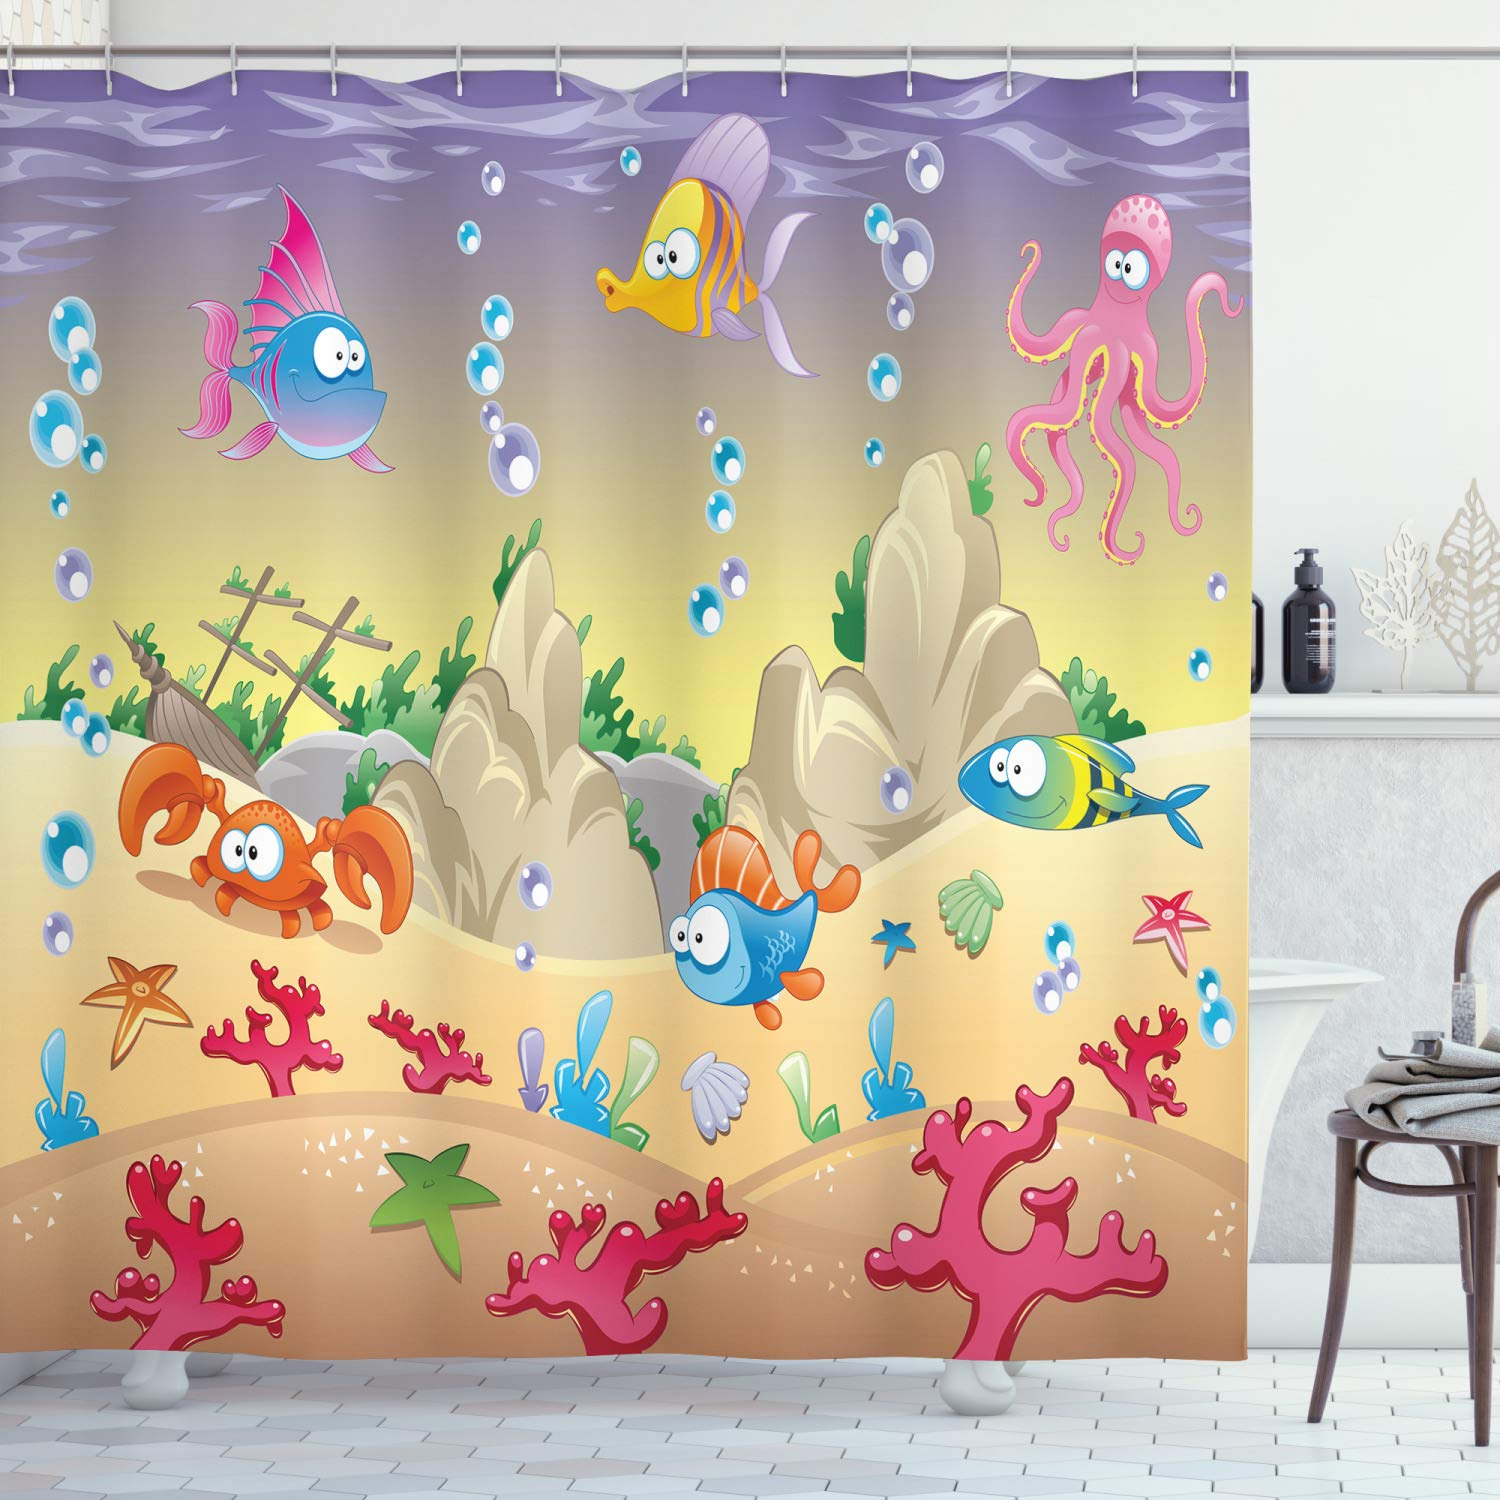 """Ambesonne Underwater Shower Curtain, Kids Cartoon Design Funny Sea Animals Fishes Sunken Ship Coral Reef and Bubbles, Cloth Fabric Bathroom Decor Set with Hooks, 75"""" Long, Purple Beige"""